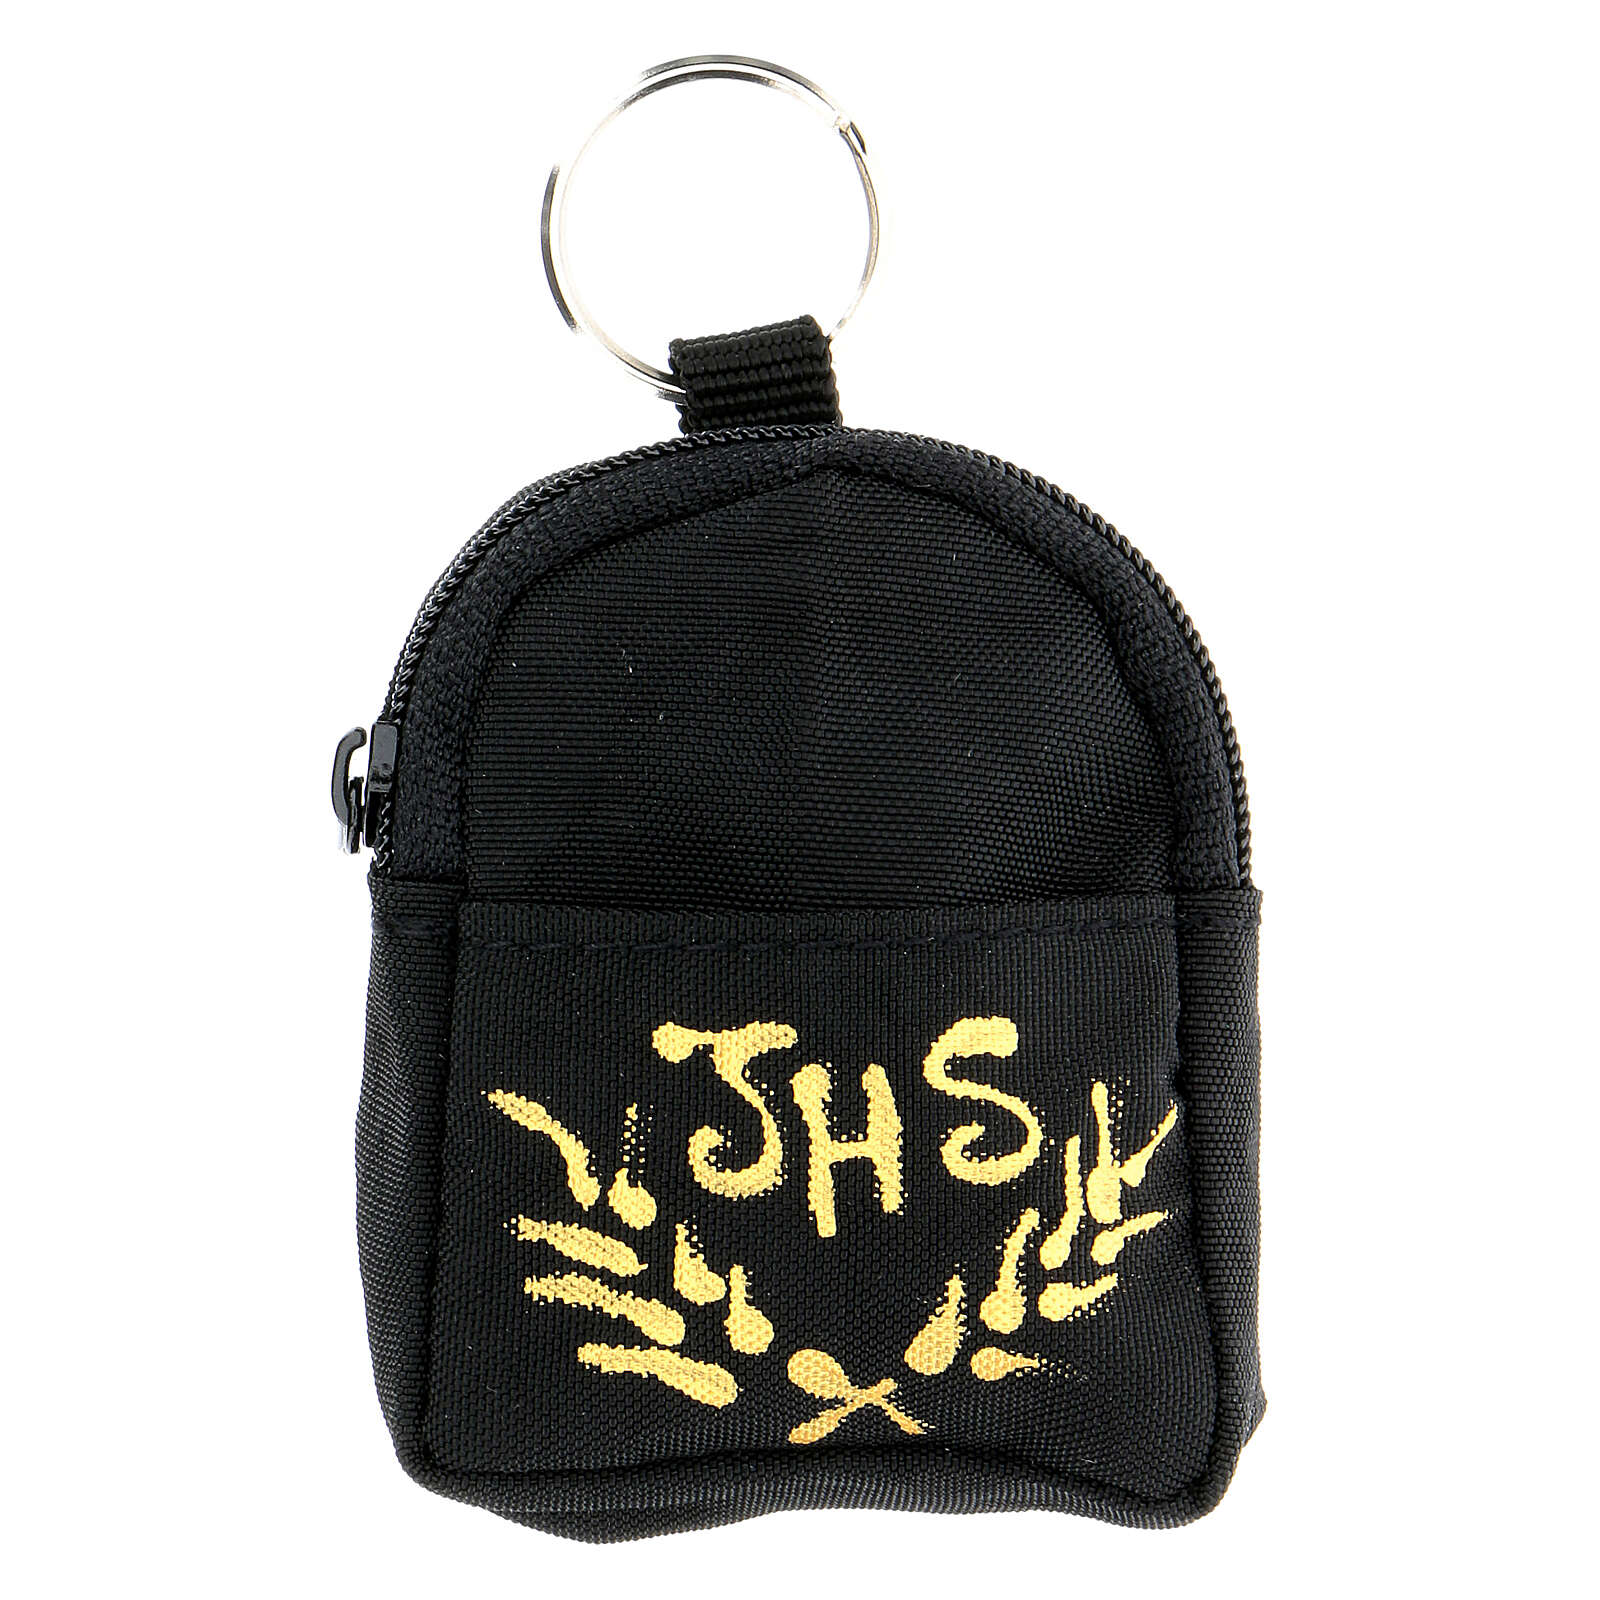 Key-holder with IHS symbol, hand-painted, backpack shaped 3